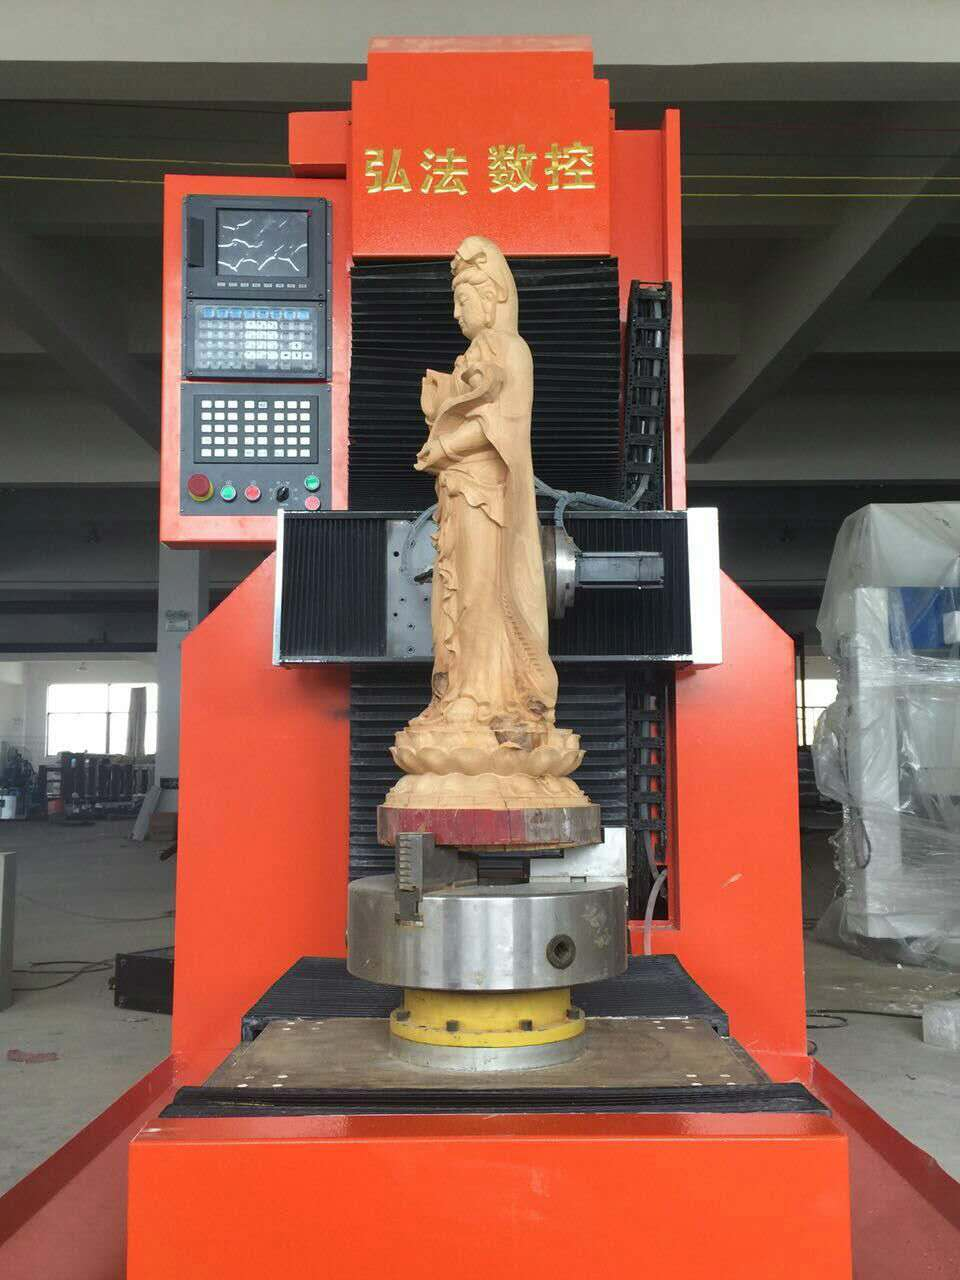 5 Axis CNC ROUTER for wood statue producing